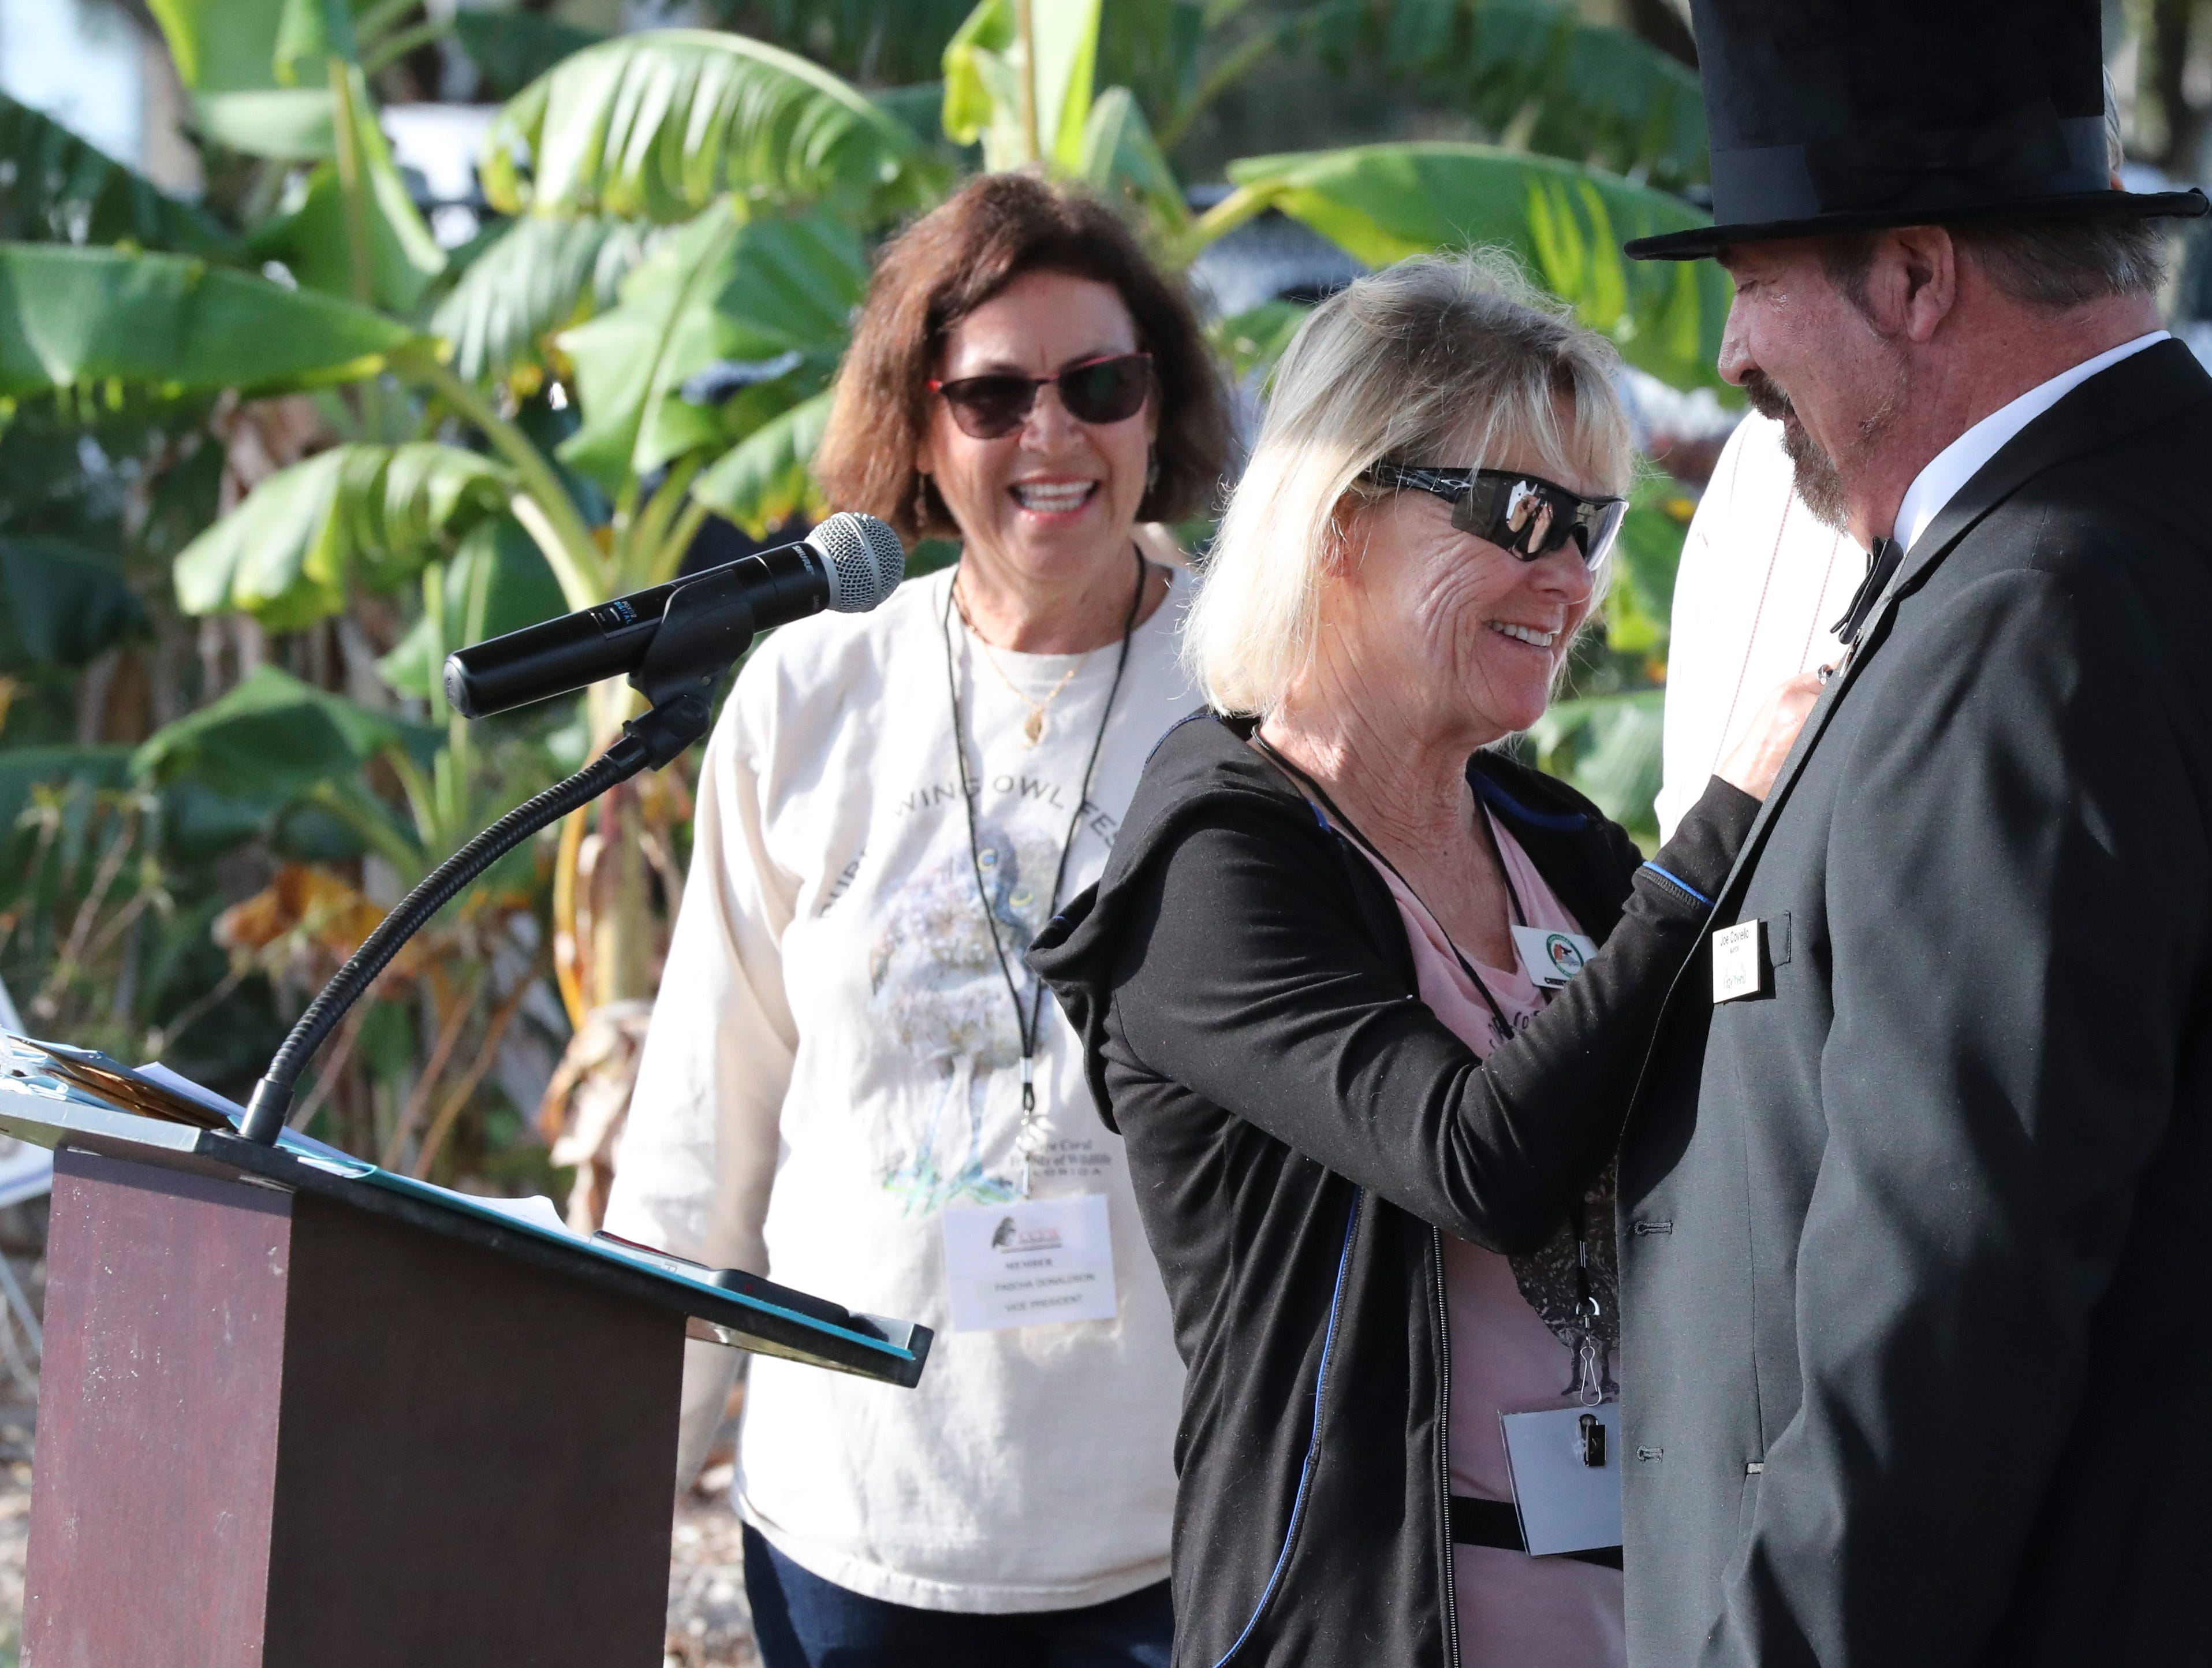 Cape Coral Mayor Joe Coviello, was pinned with an owl pin. Cape Coral's inaugural ÒGround-Owl DayÓ ceremony was Saturday, February 2, 2019. The event was hosted by CCFW and Cape Coral Parks and Recreation at the Rotary Community Garden. The owl naming contest winners were announced as well as the Mayor read a  proclamation. Everyone hoped that the new mascot saw his shadow so six more weeks of Òwinter weatherÓ in Cape Coral could be enjoyed. The winning names for the pair of burrowing owls that live next to the City Hall are Owliver and Owlivia.